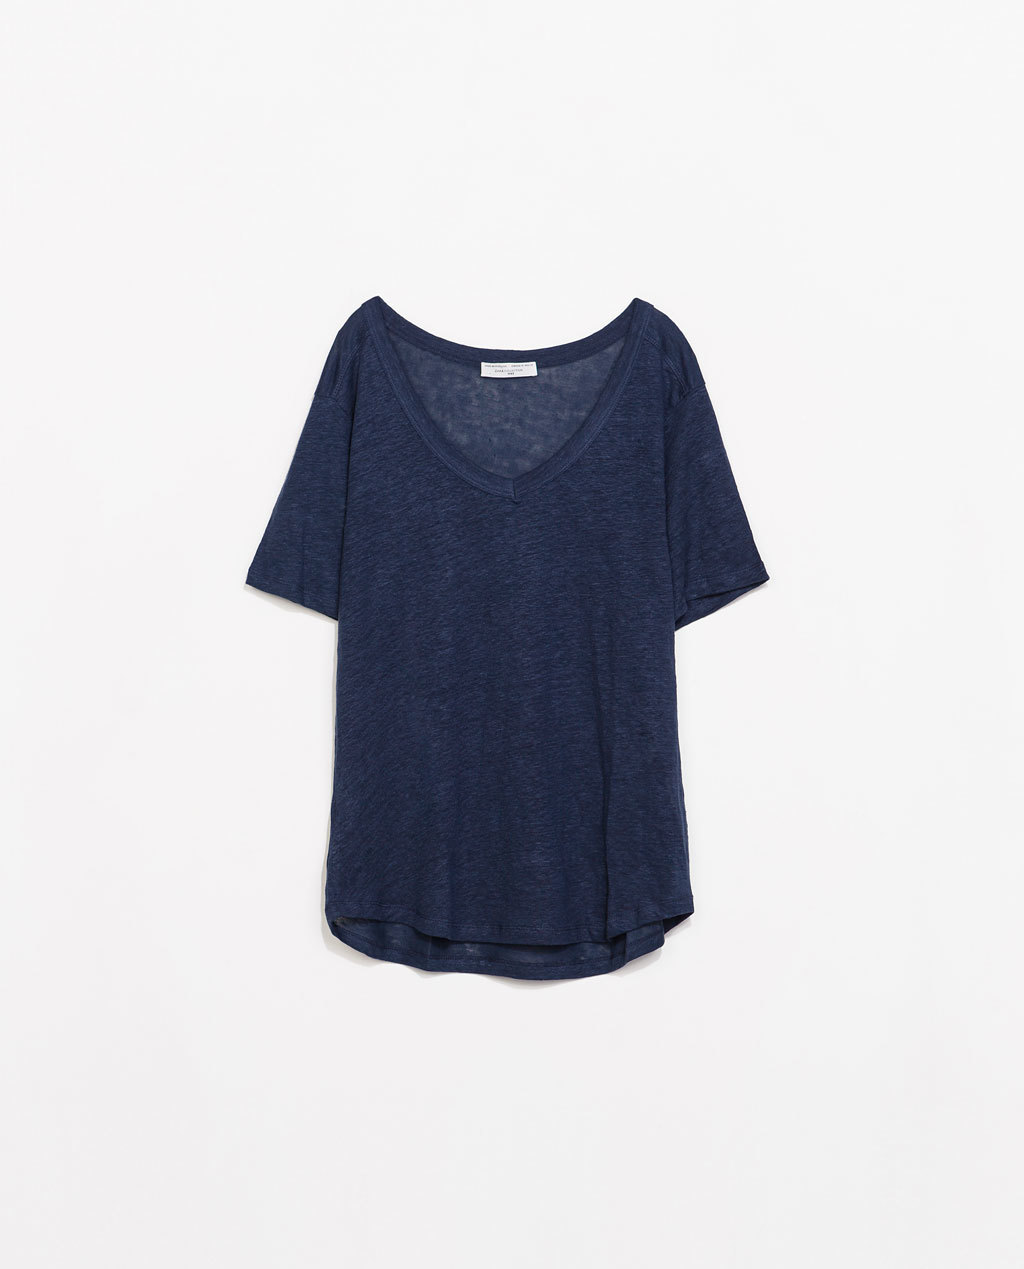 Linen T Shirt - neckline: low v-neck; pattern: plain; length: below the bottom; style: t-shirt; predominant colour: navy; occasions: casual; fibres: linen - 100%; fit: loose; sleeve length: short sleeve; sleeve style: standard; texture group: linen; pattern type: fabric; season: s/s 2014